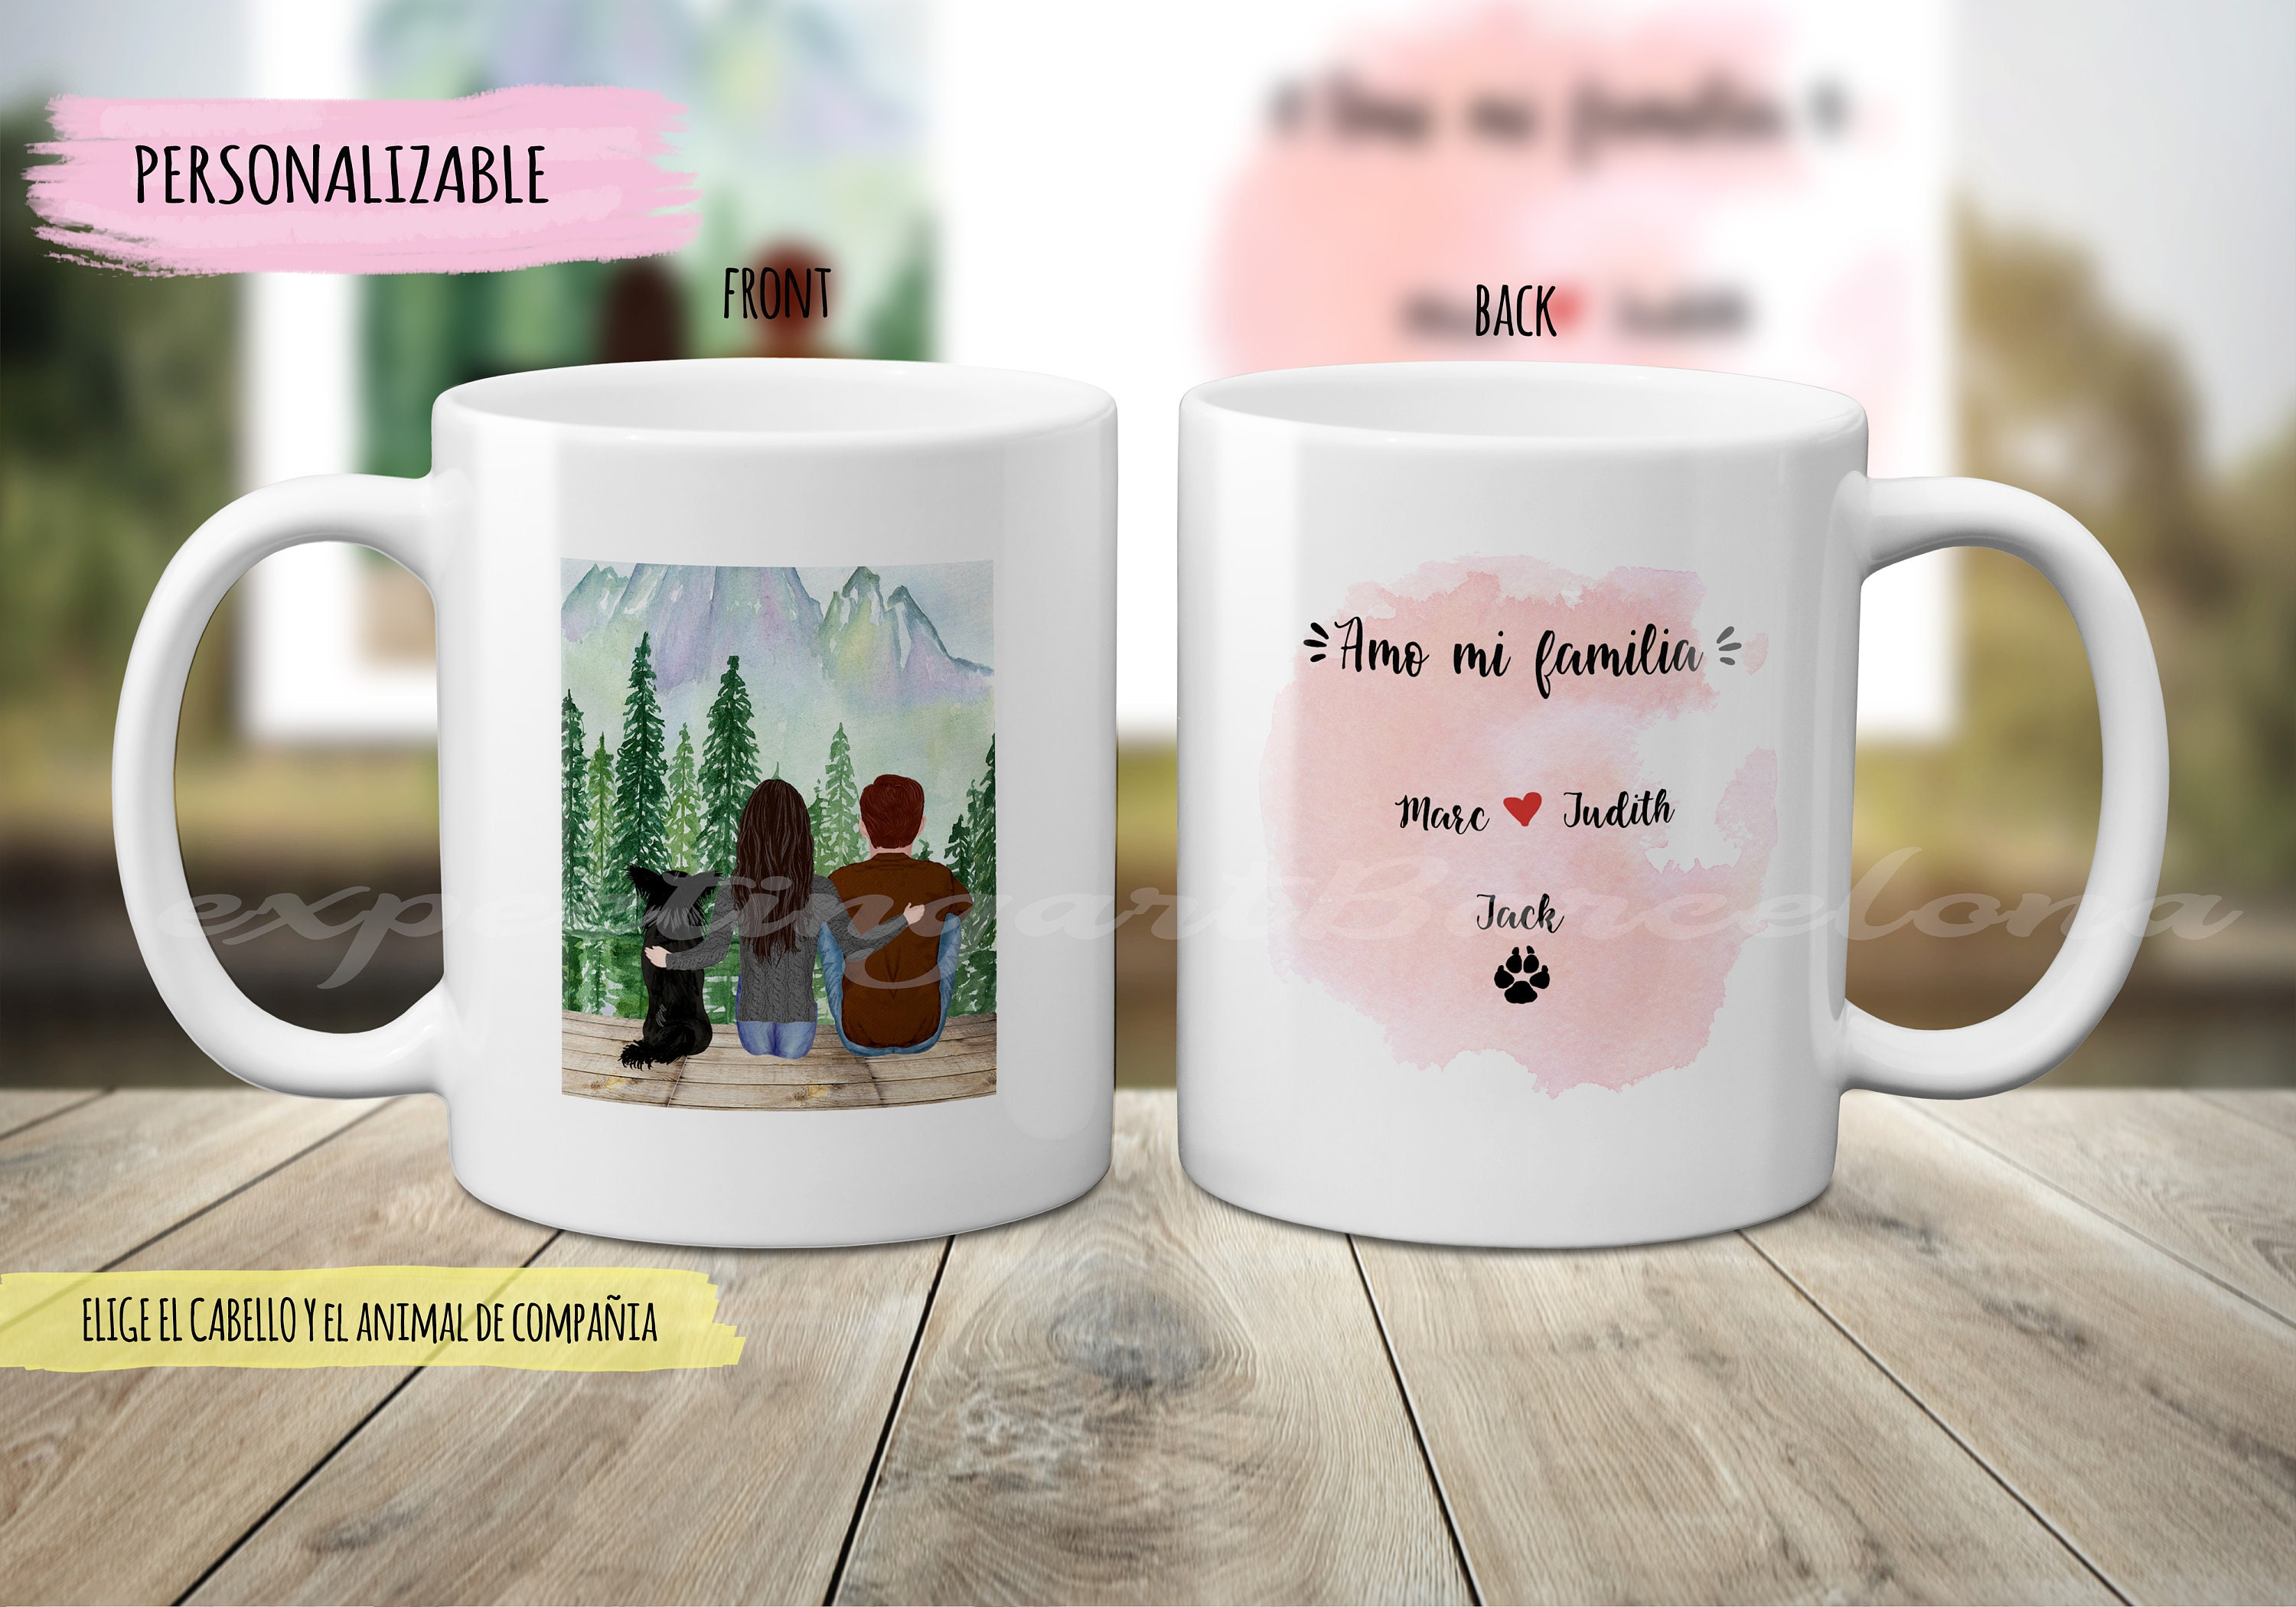 Personalized Cup For Couples With Dogs Friendship Gift Personalized Mug Named Mug Couple Mug Cup Boyfriends Lovely Coffe Tea